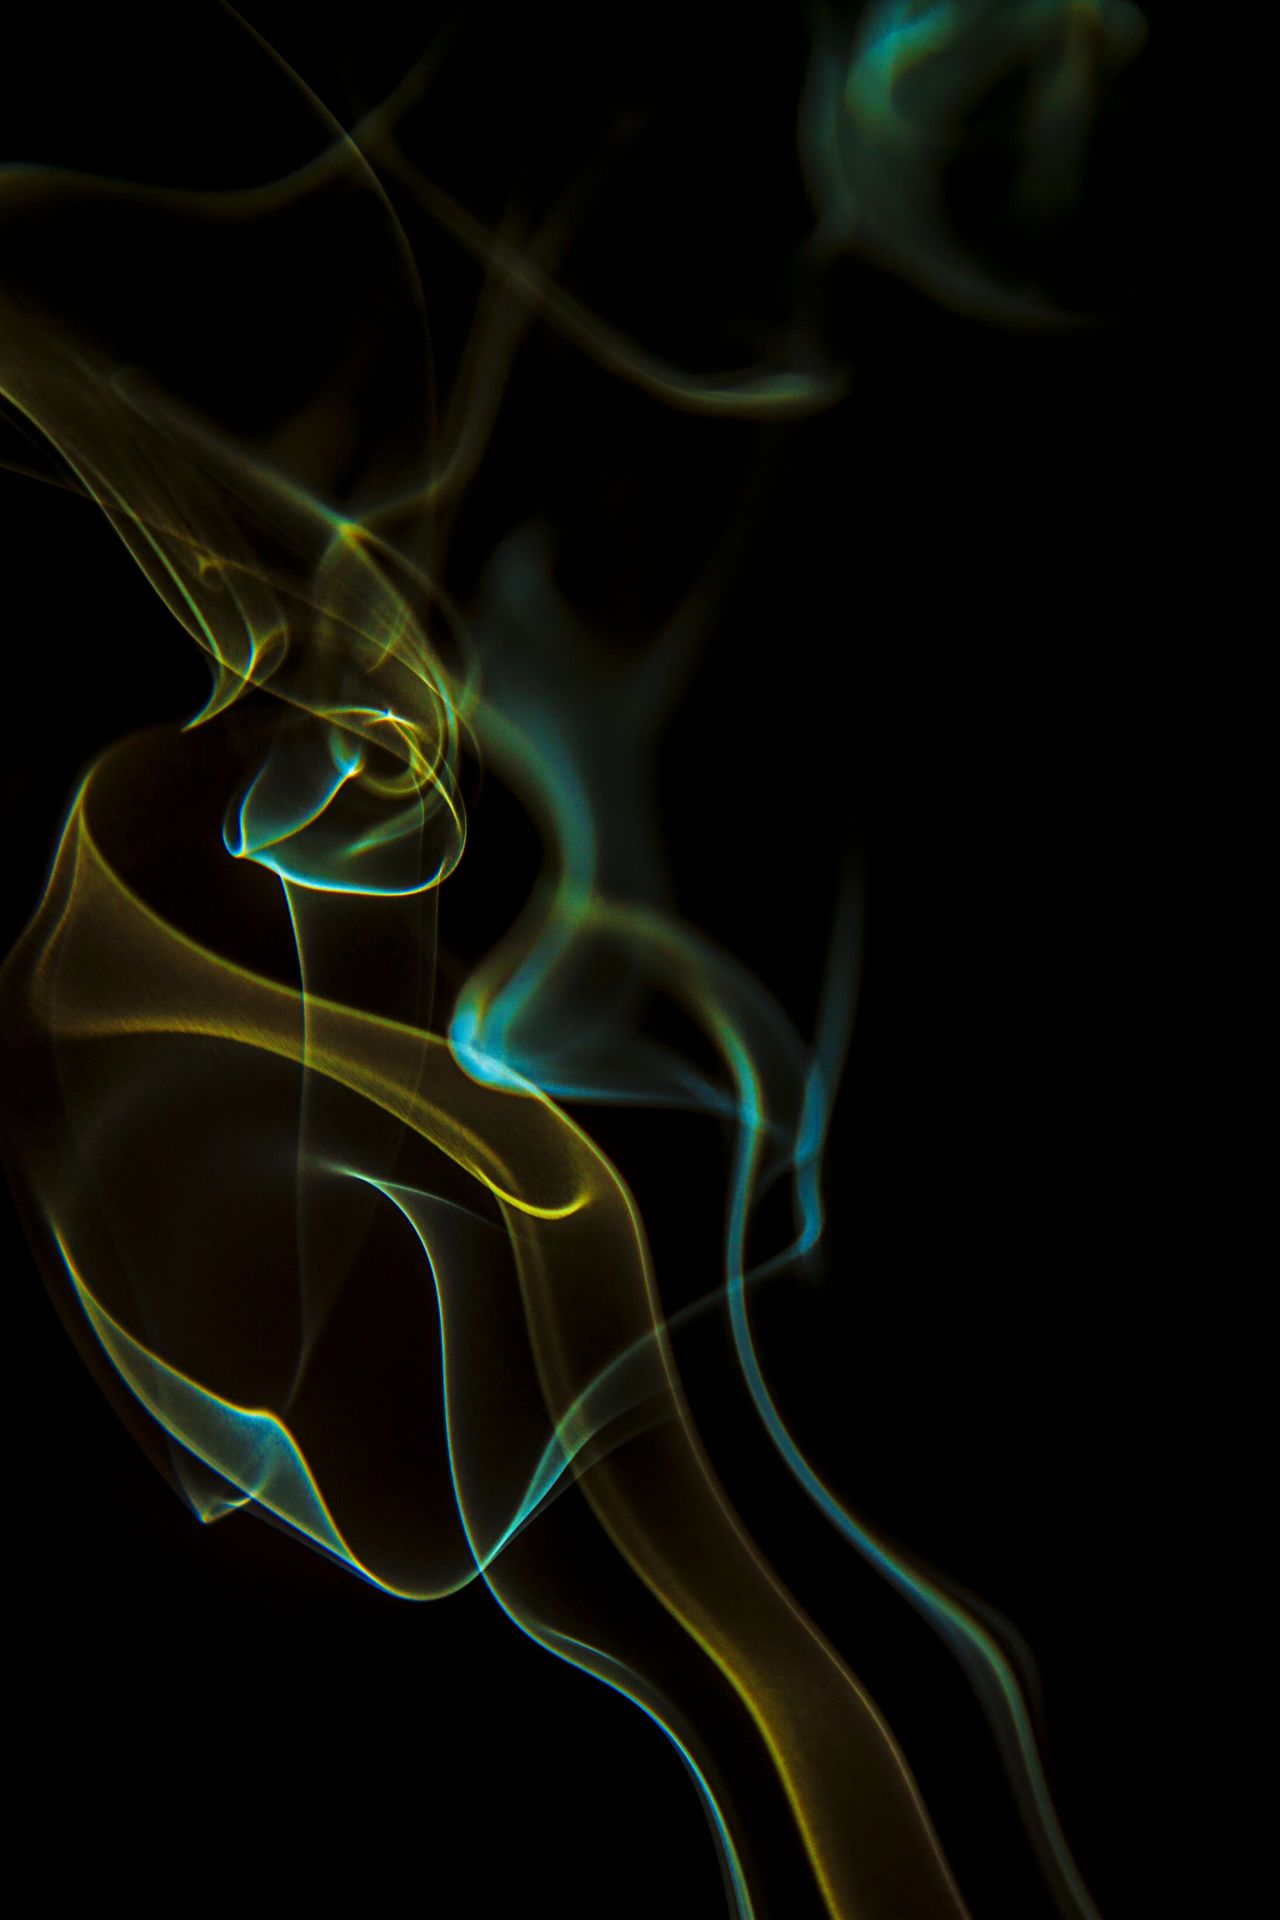 Smoke Neon EyeEm Smoke Time Smoker Smoked Smoke Tricks Colored Smoke Isolated Smoke Shapes Black Background Isolated Textured  Textures Green Color Green Yellow Smoke Green Smoke Blue Smoke